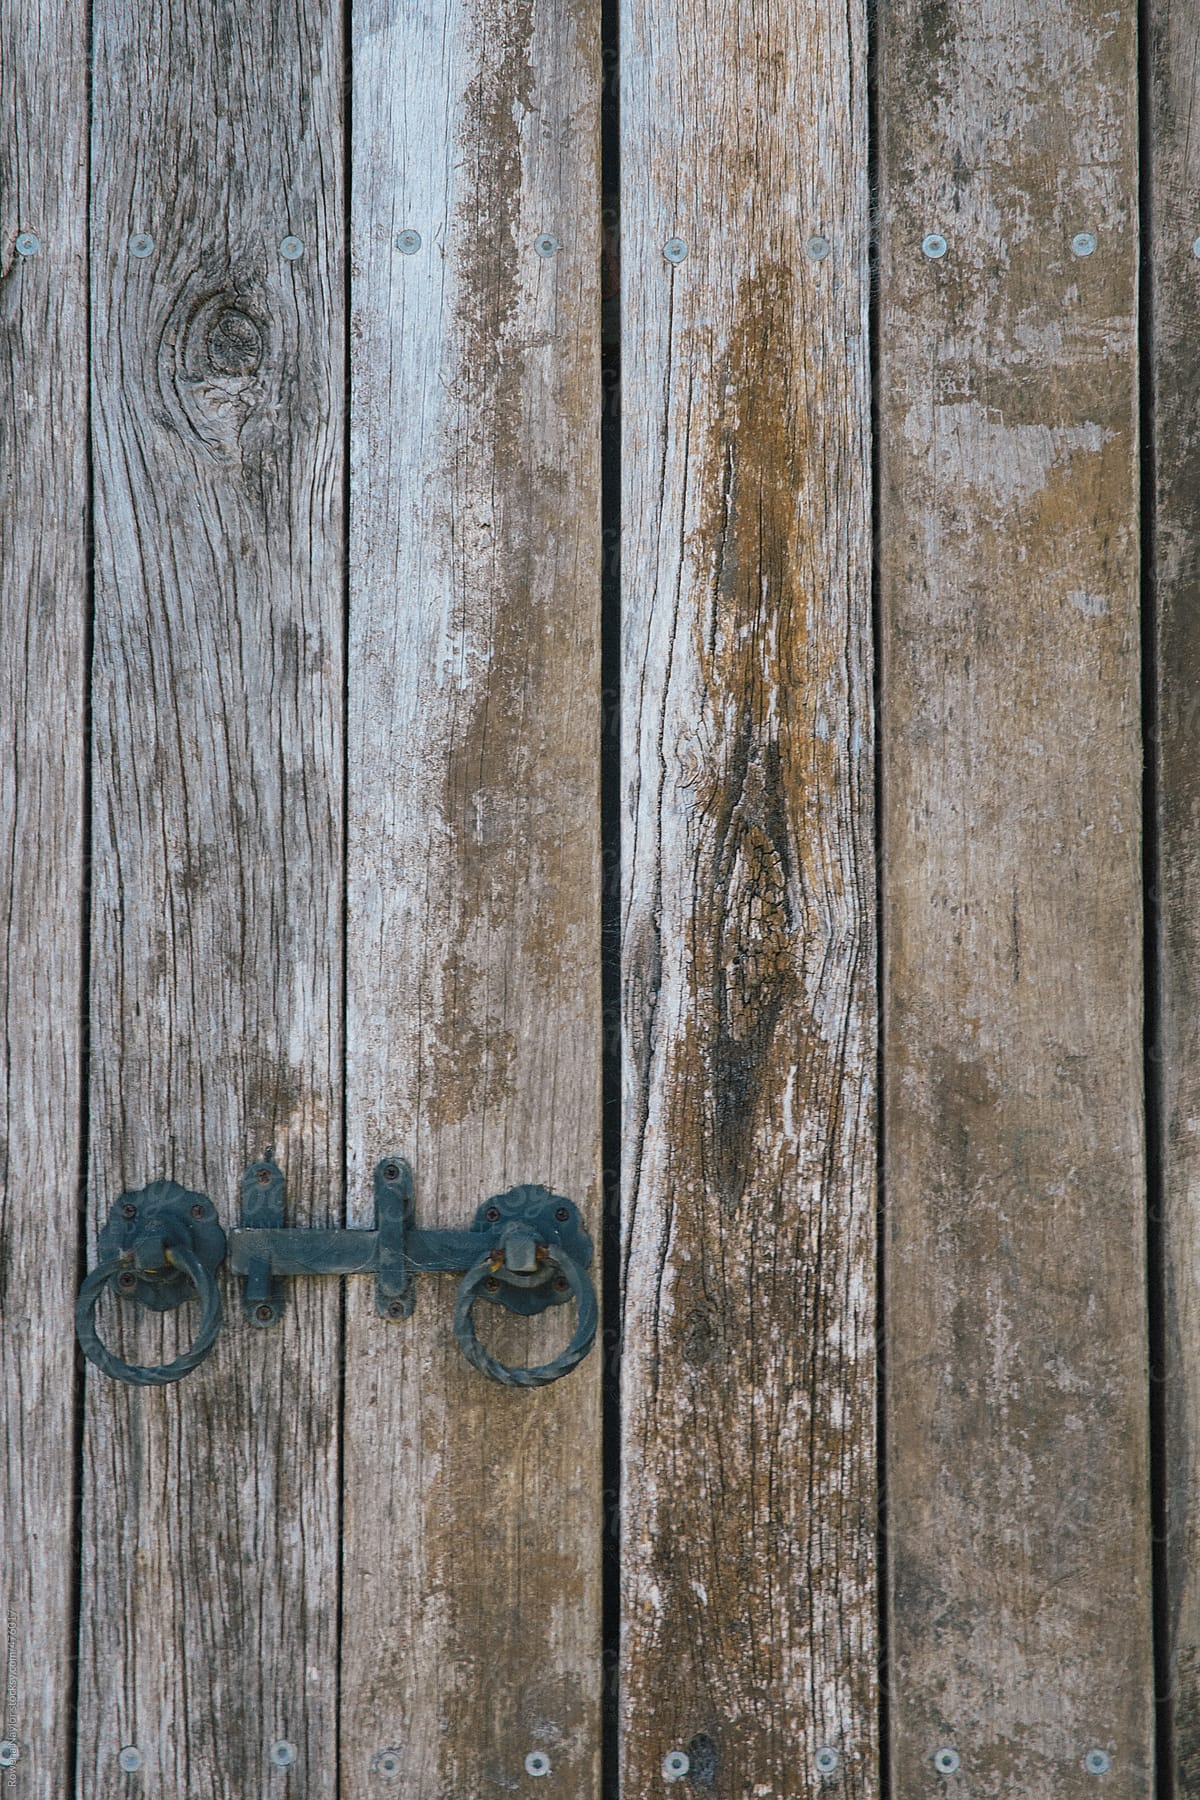 Old Barn Door By Rowena Naylor For Stocksy United